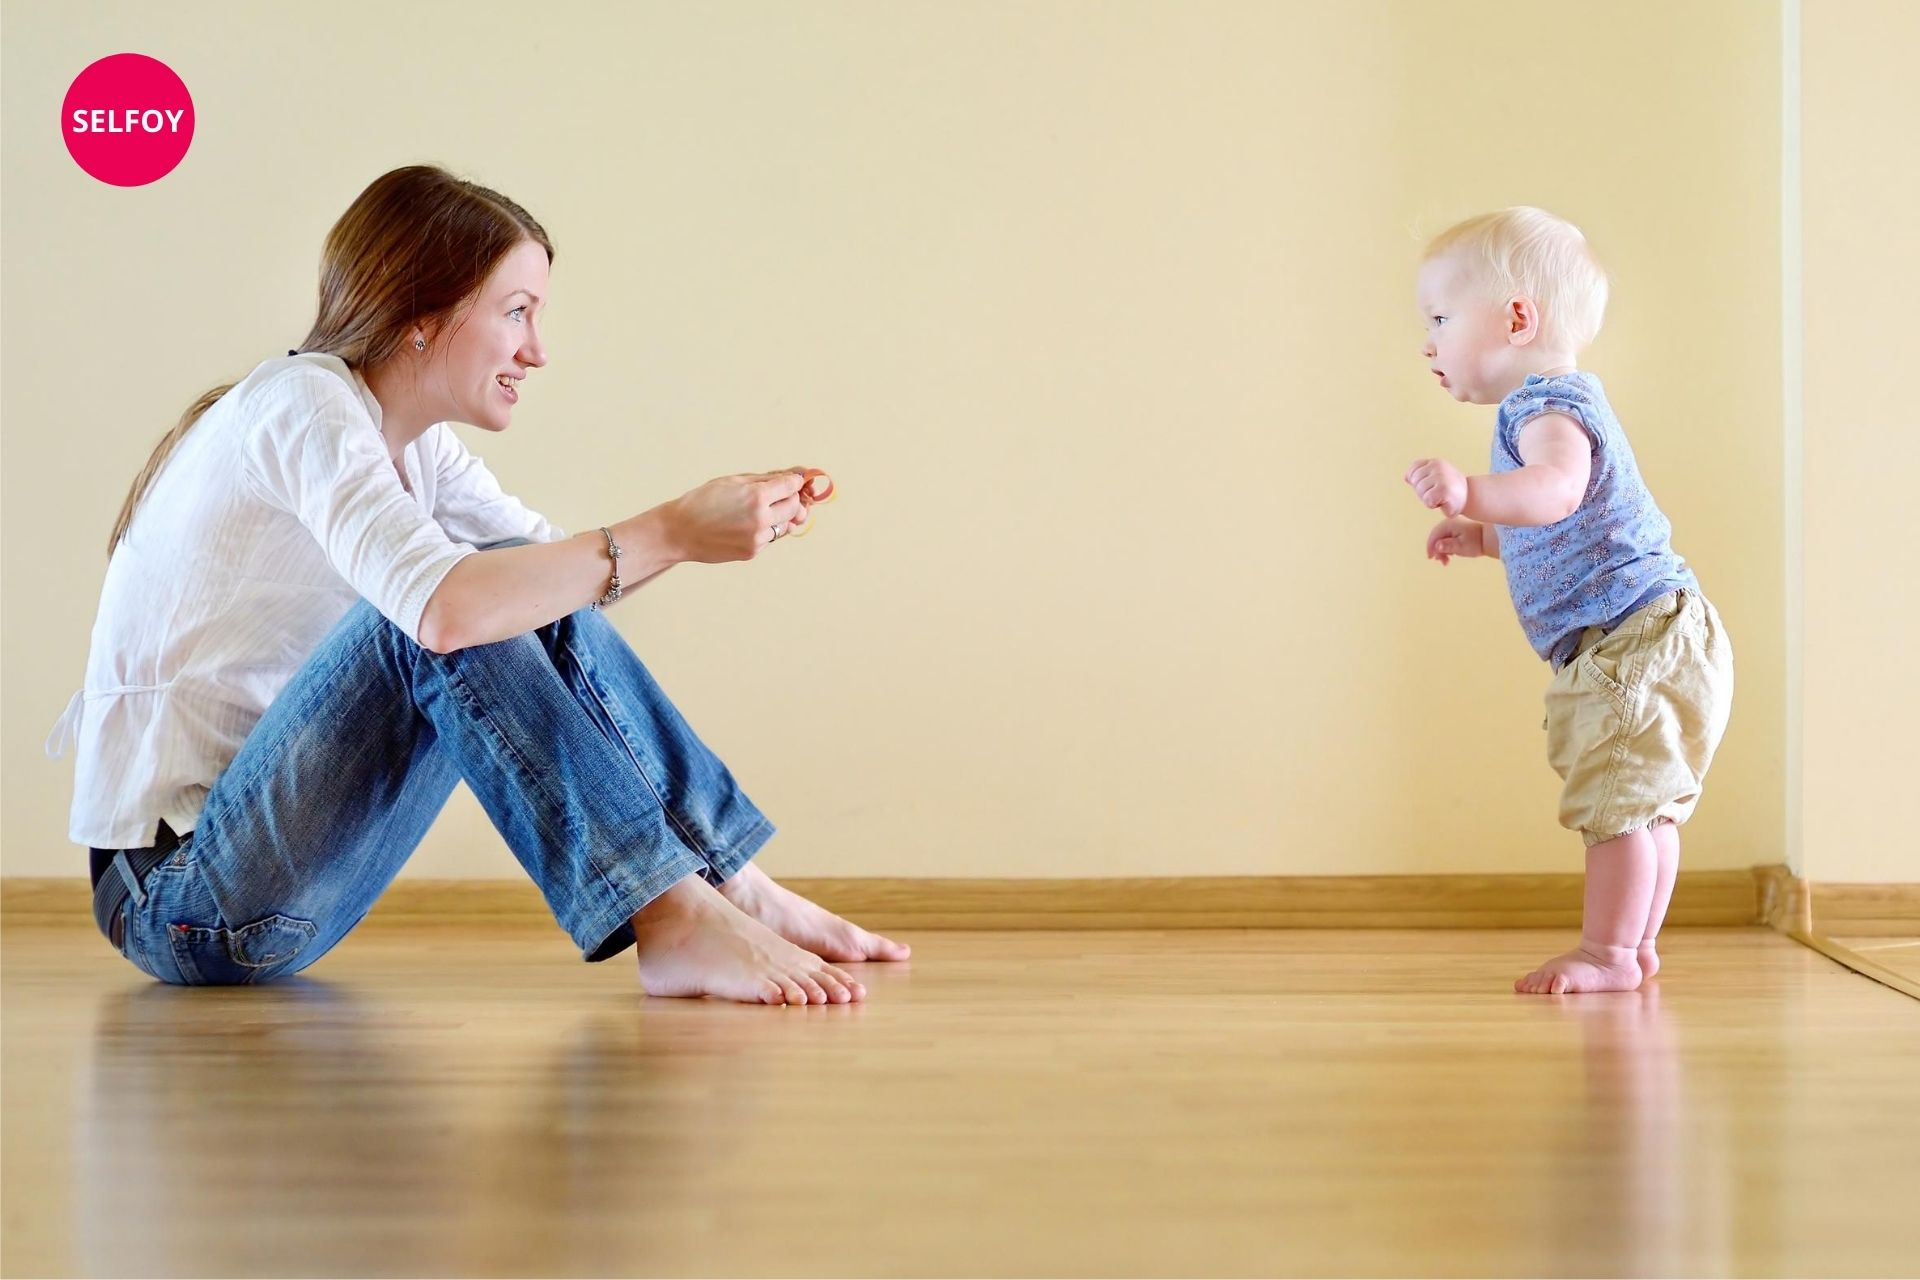 woman playing with her baby and collecting life experiences which are nothing but self esteem